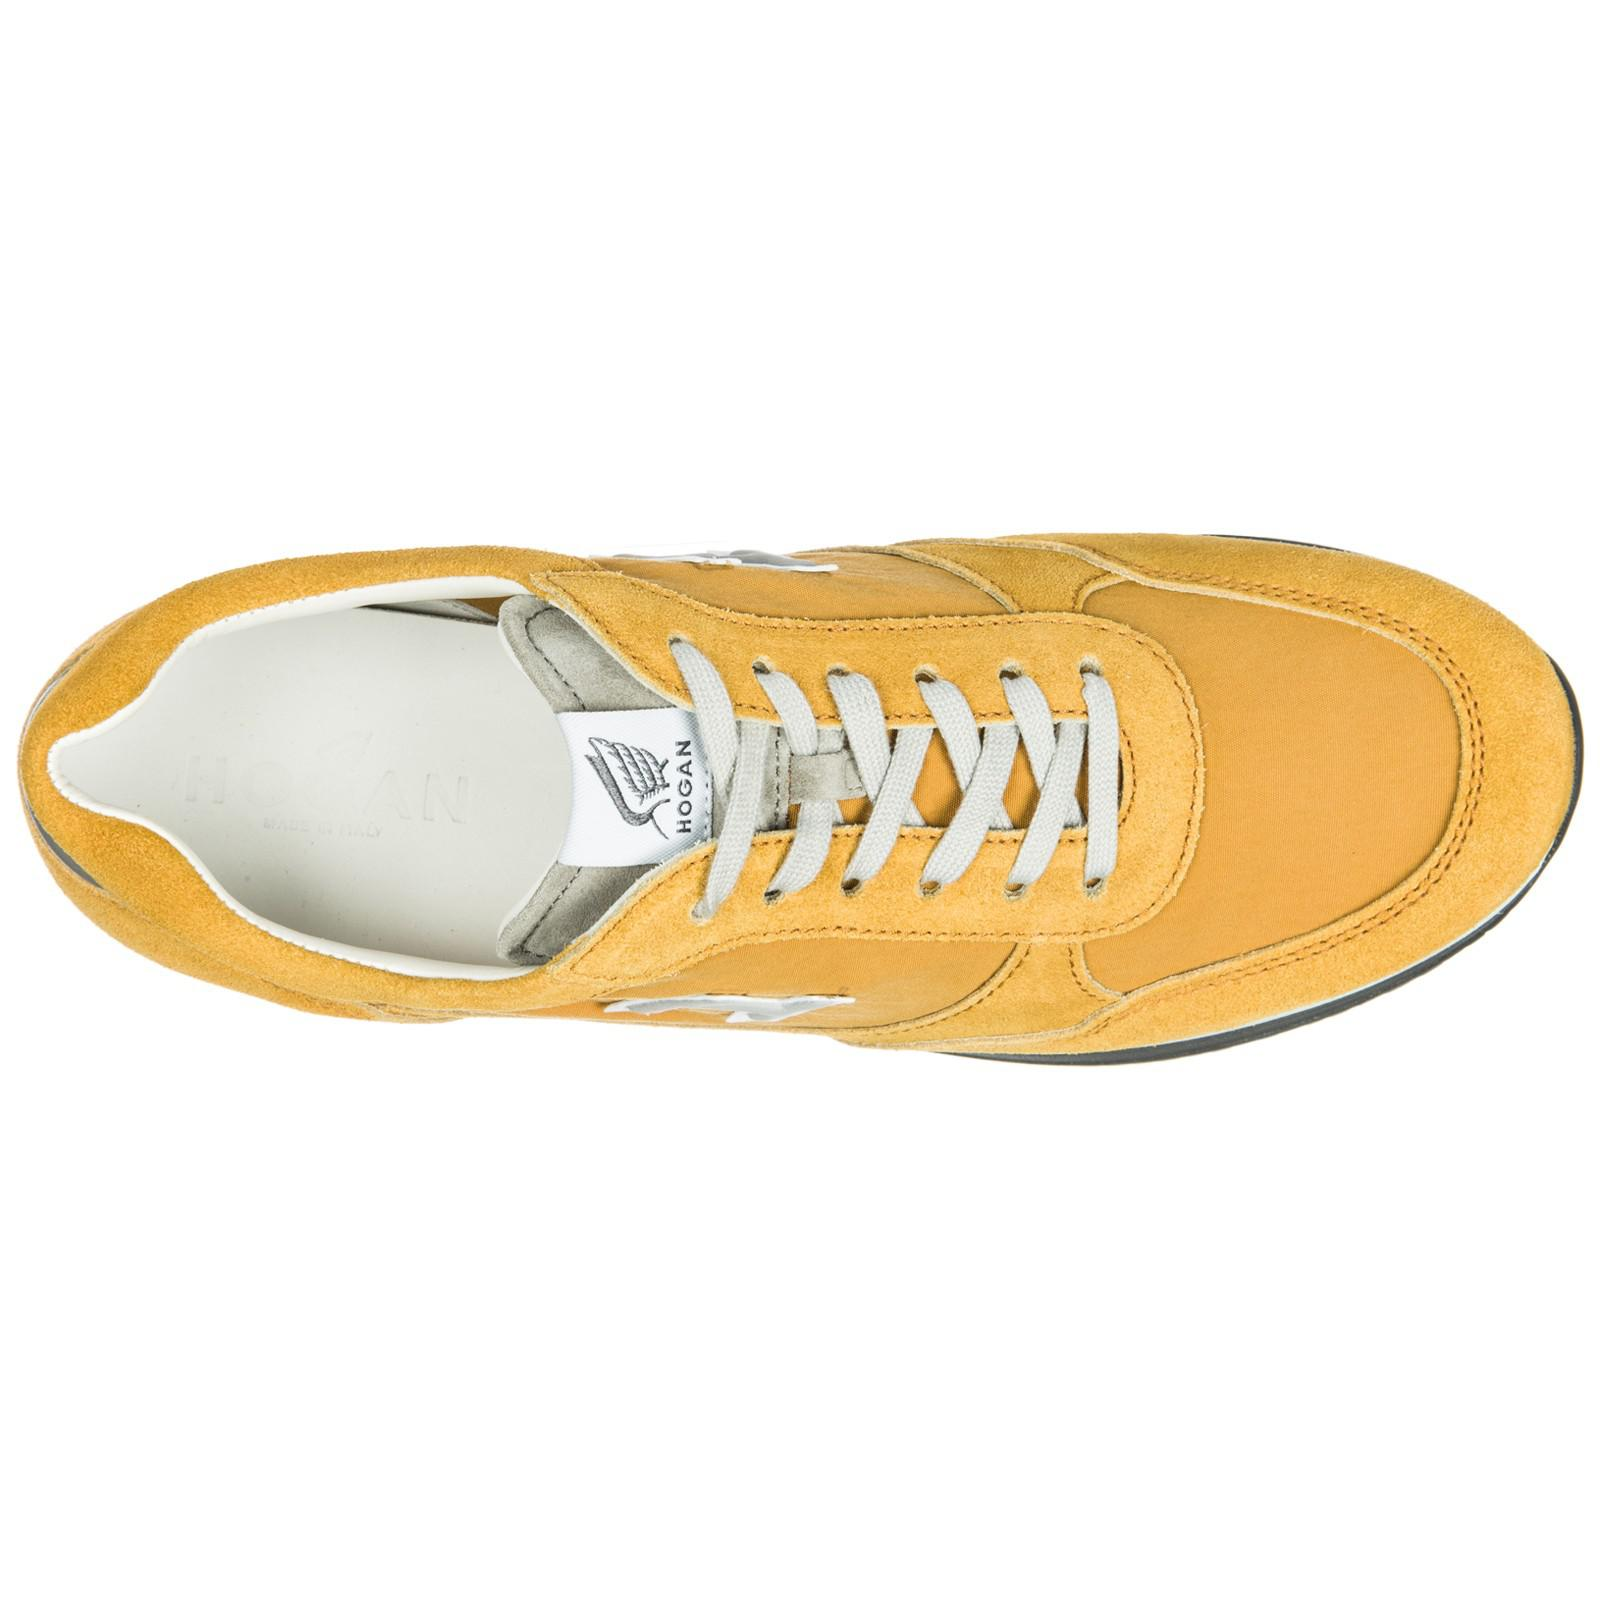 Hogan Shoes Suede Trainers Sneakers H198 Sport for Men - Lyst